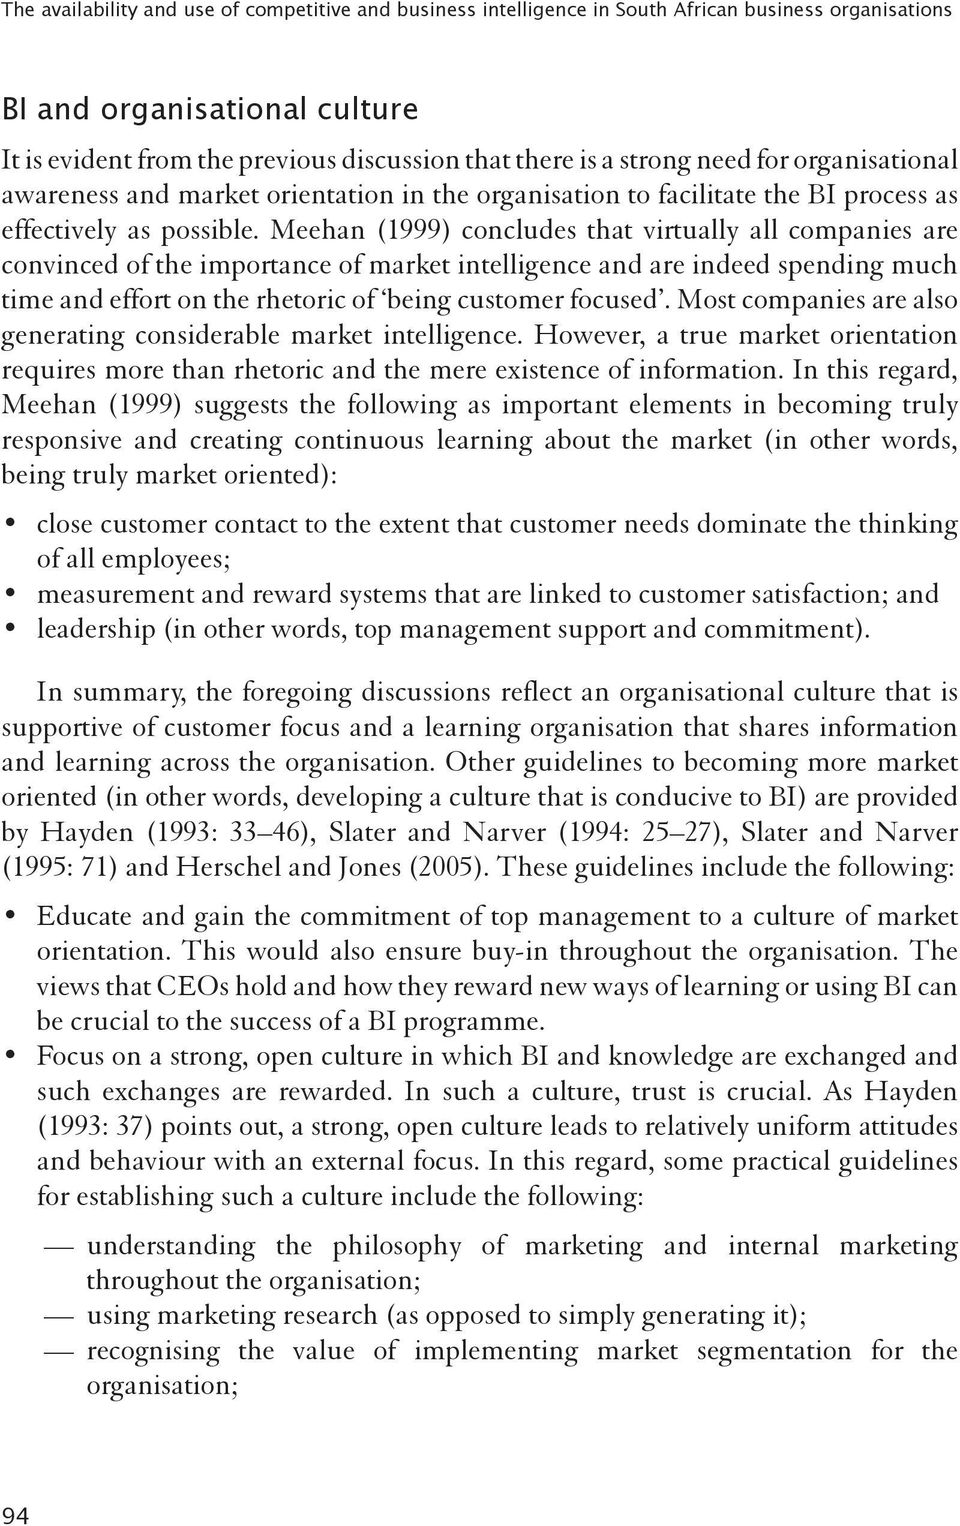 Meehan (1999) concludes that virtually all companies are convinced of the importance of market intelligence and are indeed spending much time and effort on the rhetoric of being customer focused.